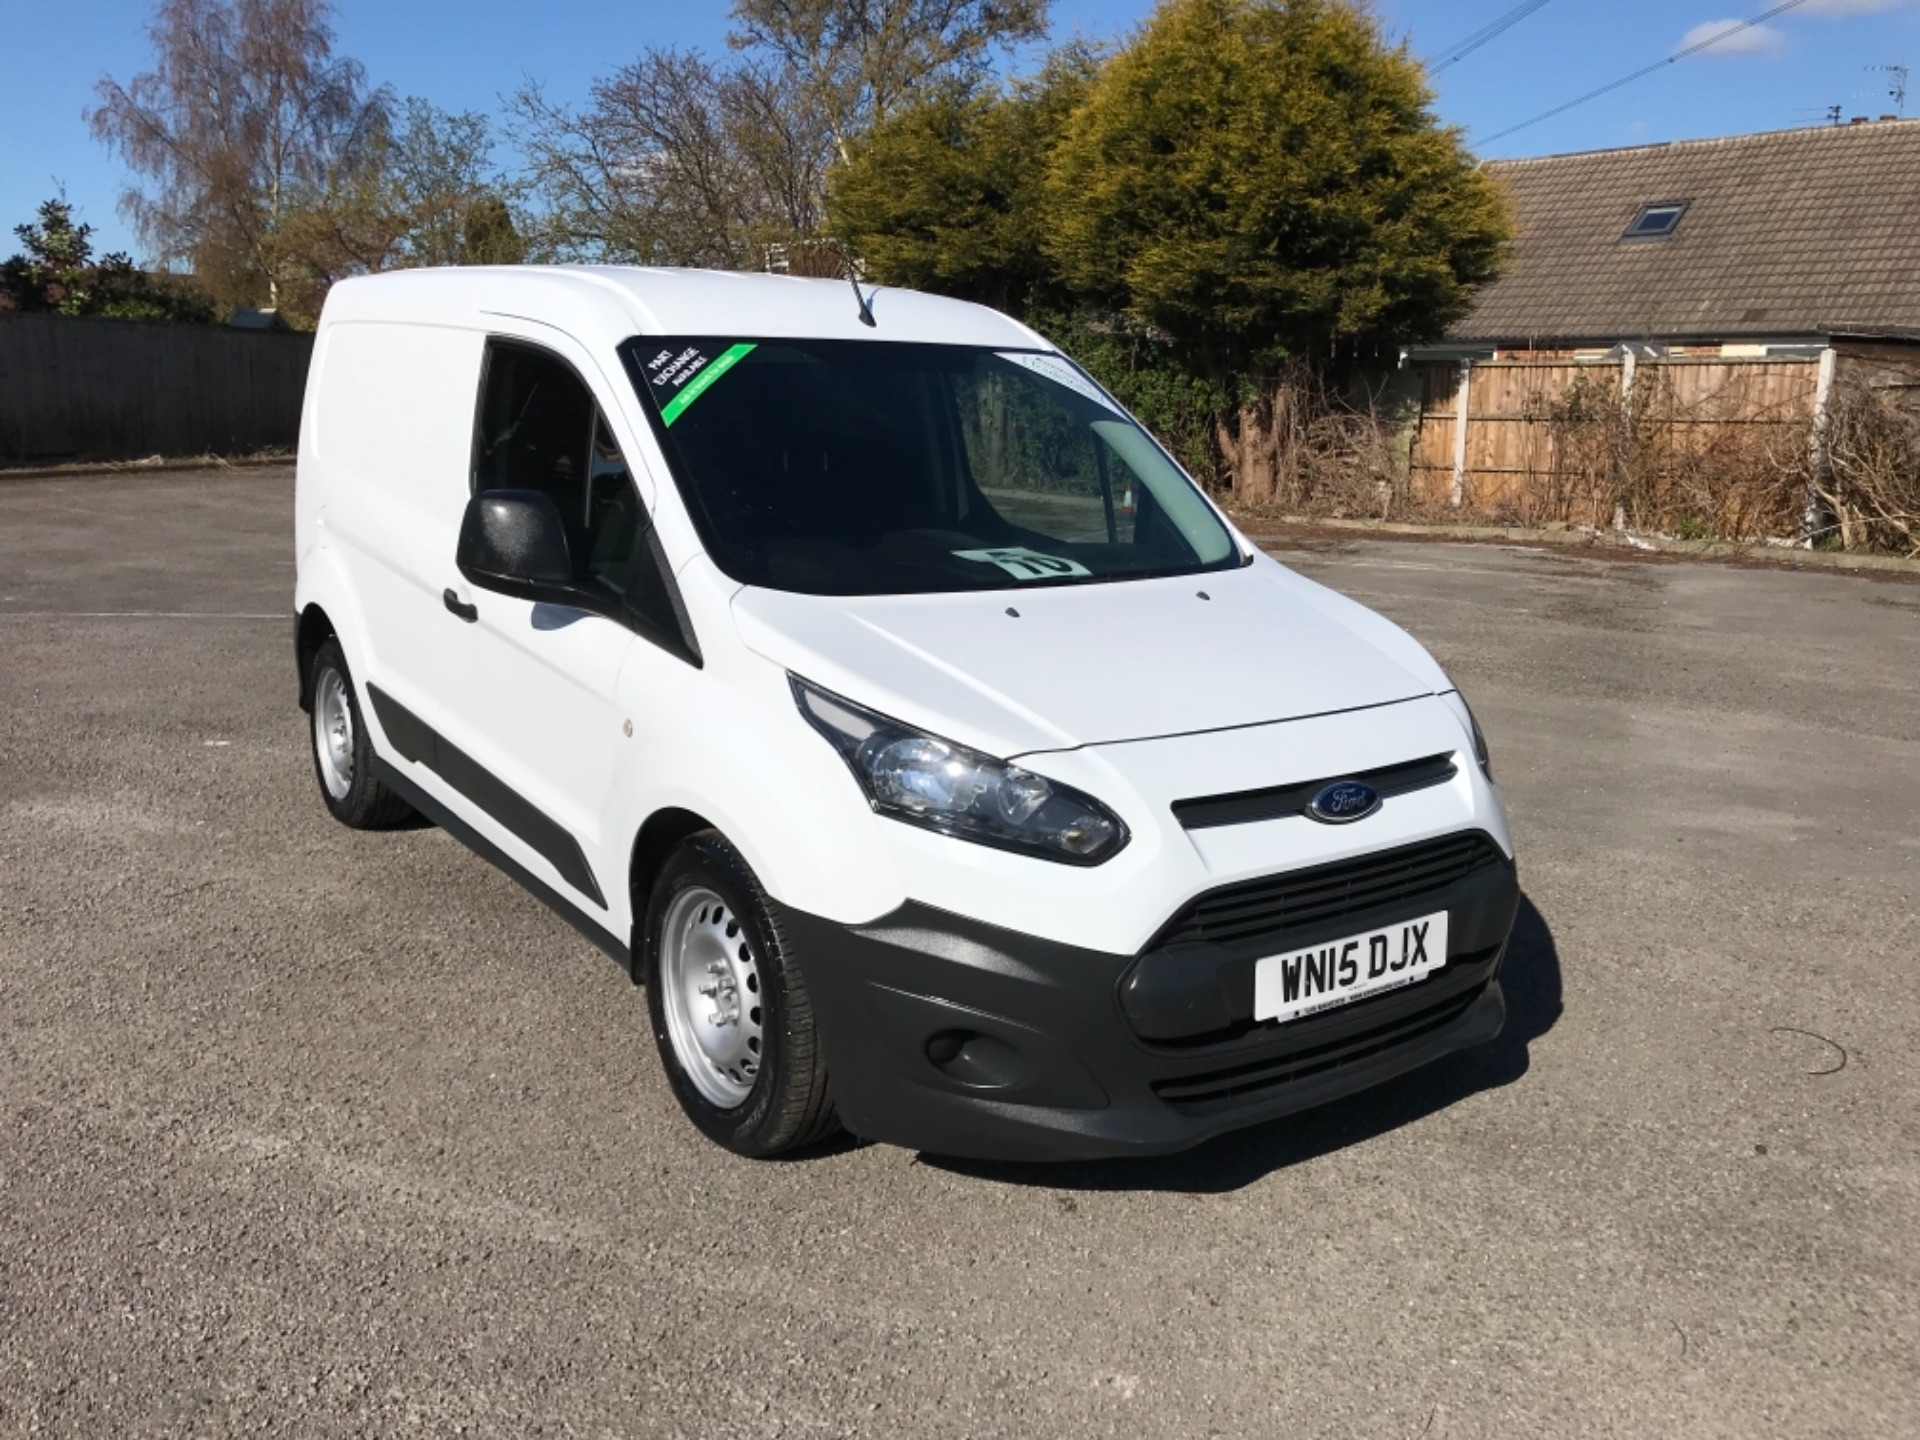 2015 Ford Transit Connect 1.6 Tdci 75Ps Van EURO 5 (WN15DJX) Image 1